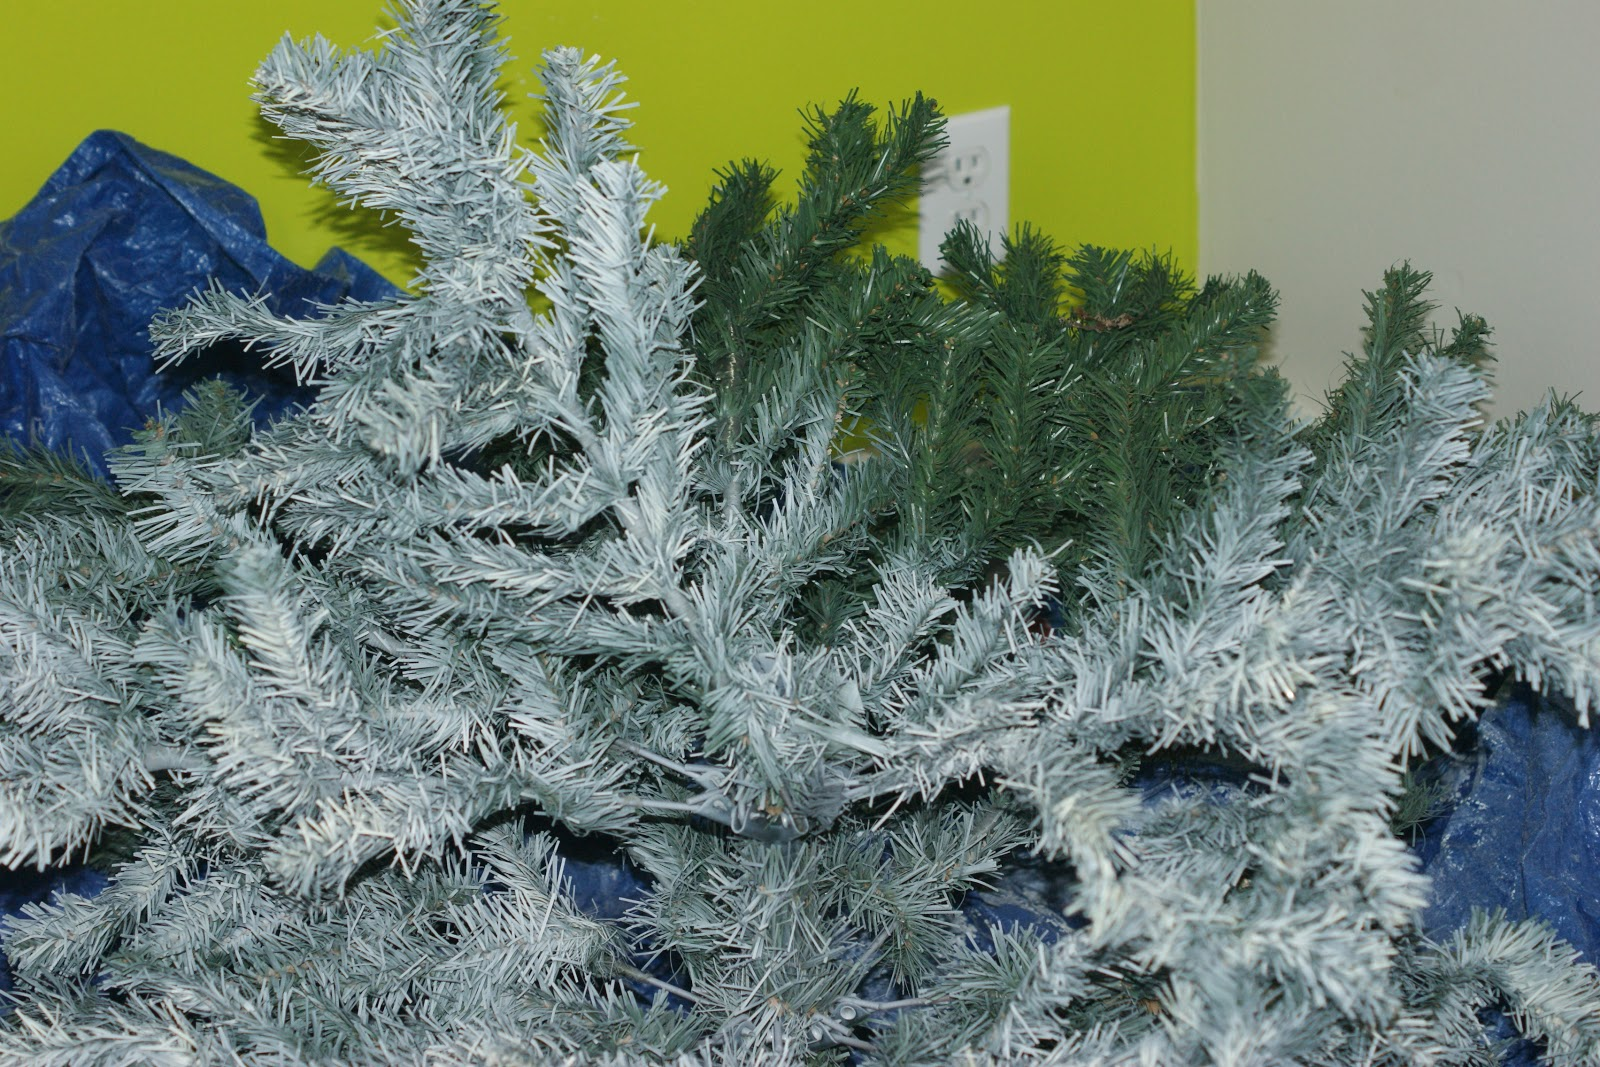 Quirky Artist Loft: How To Paint A Christmas Tree From